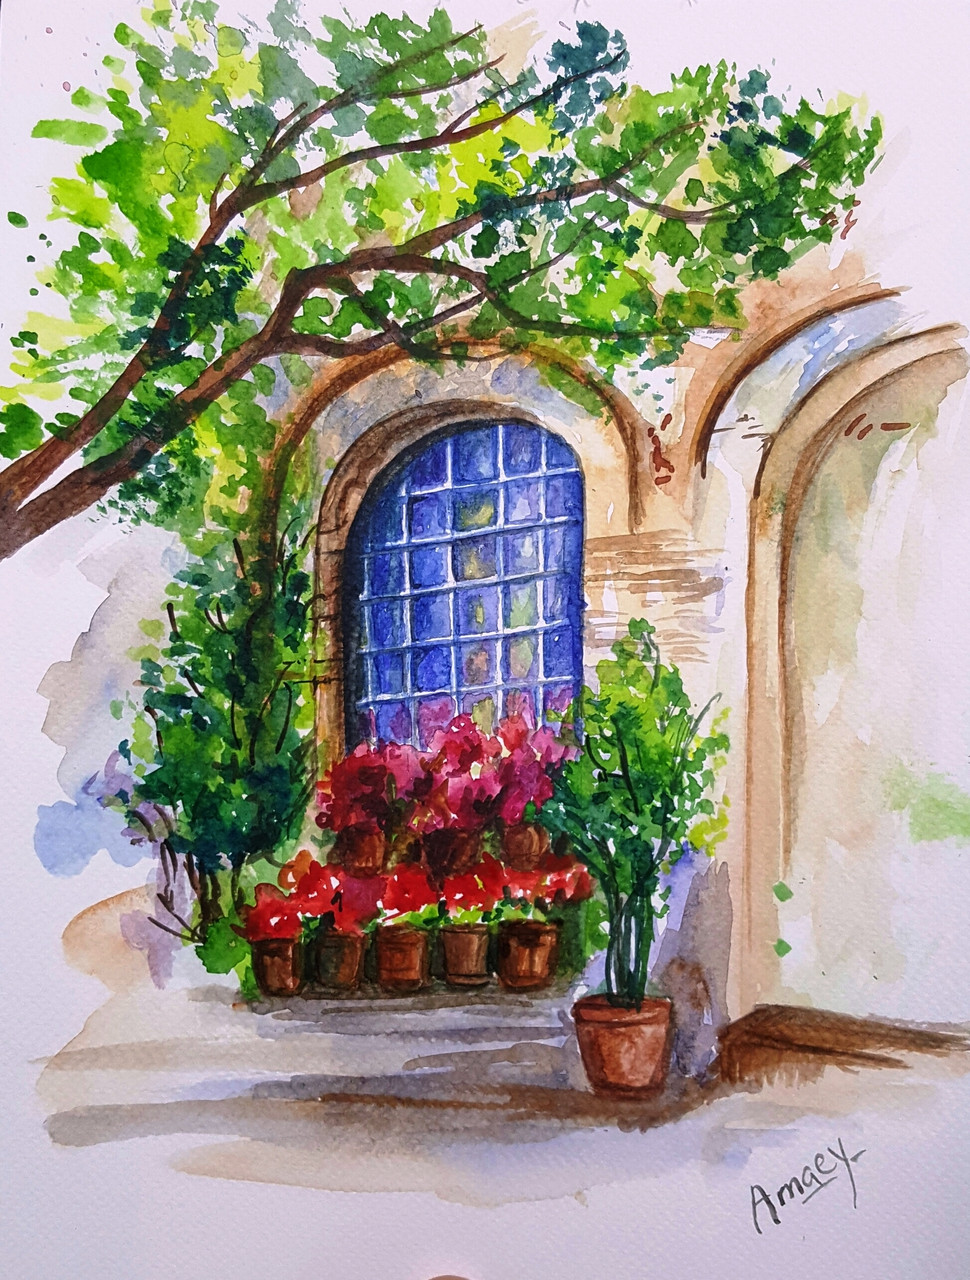 the arched window art